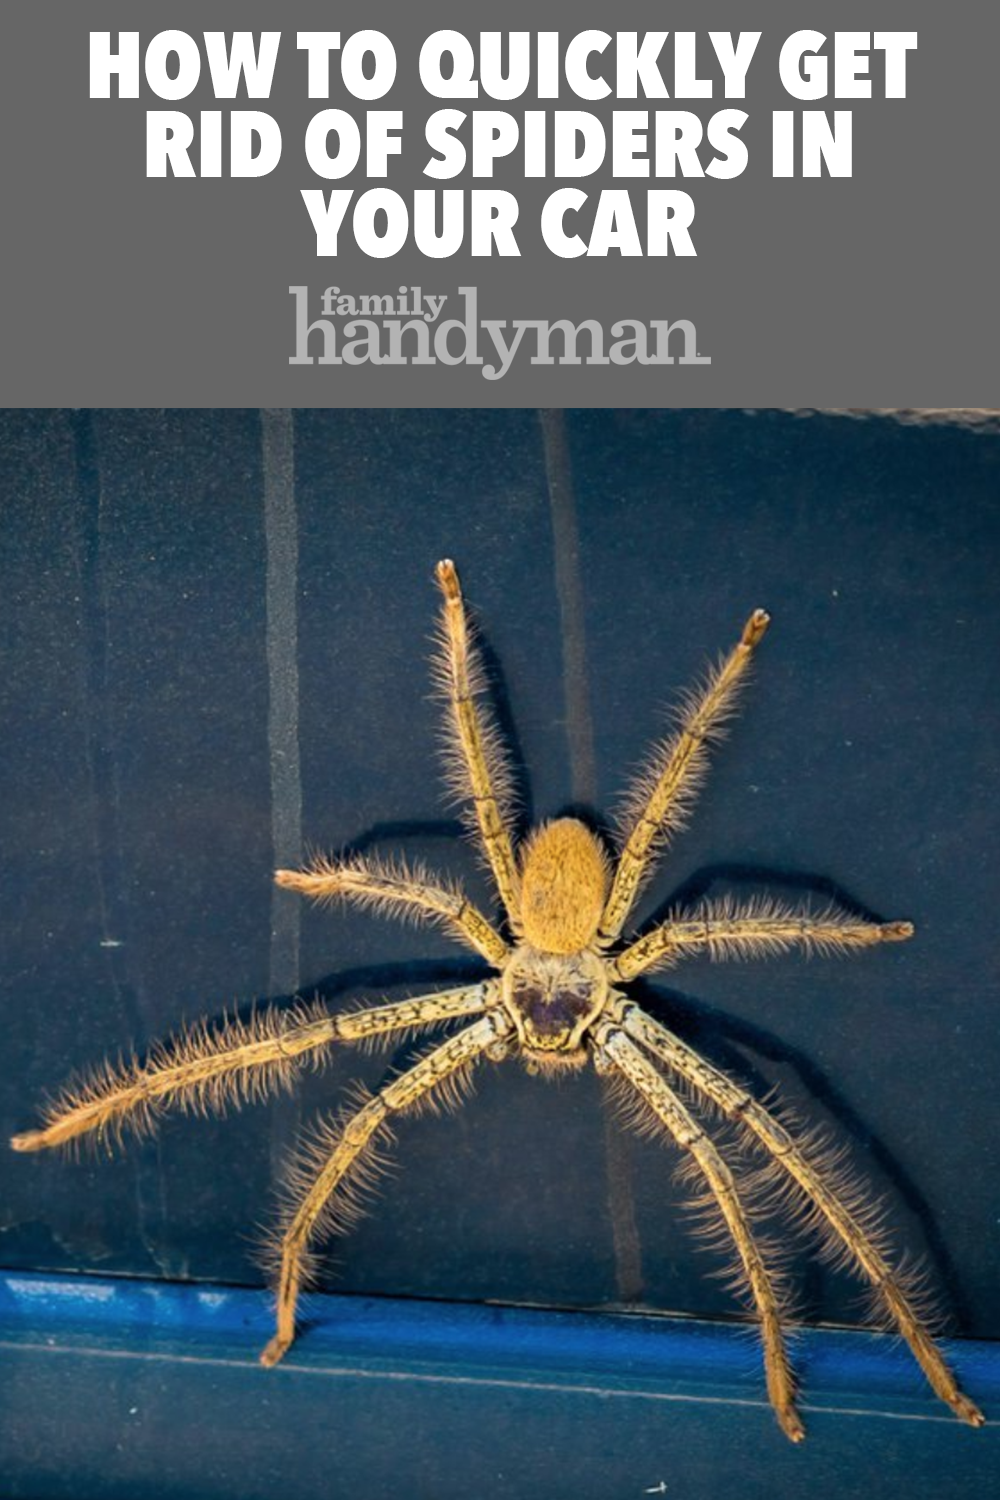 6b537aa9d365c5be4b5e8f9907fbdedb - How To Get Rid Of Spiders From Your Car